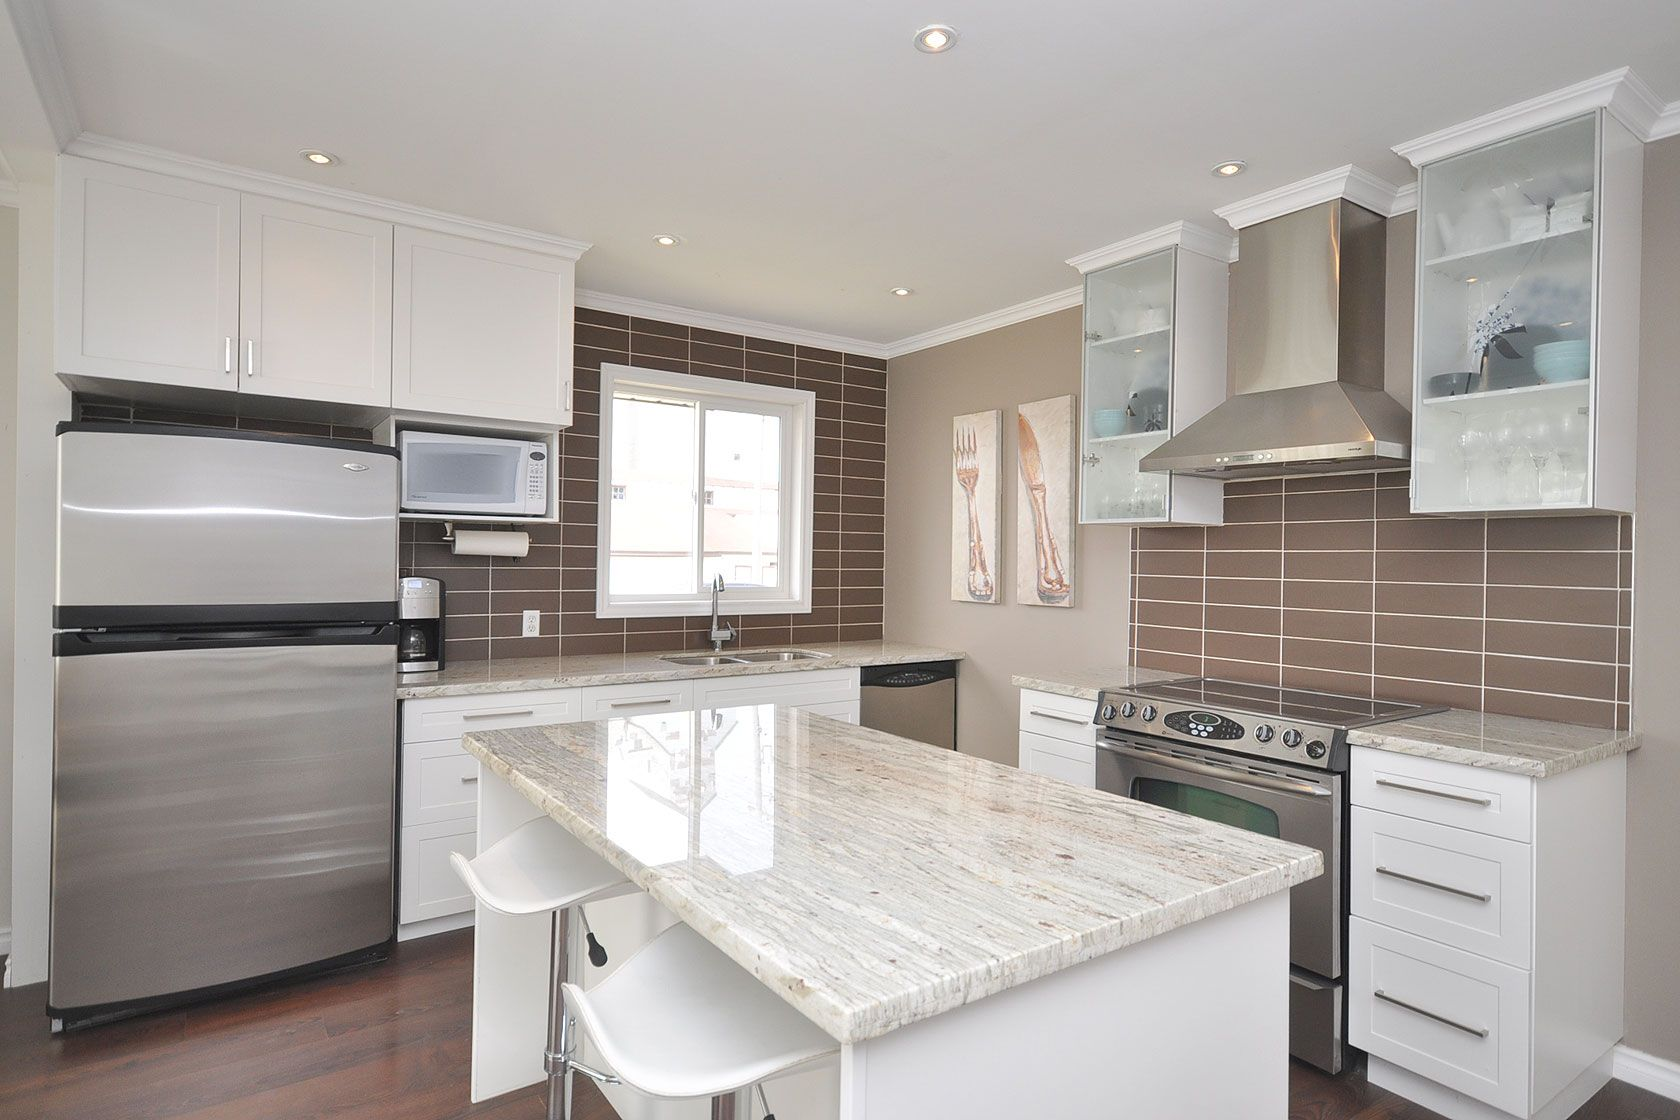 Pin By Lindsay Mcdonald Dickson On Sanford Before After White Granite Countertops White Cabinets White Countertops White Kitchen Remodeling